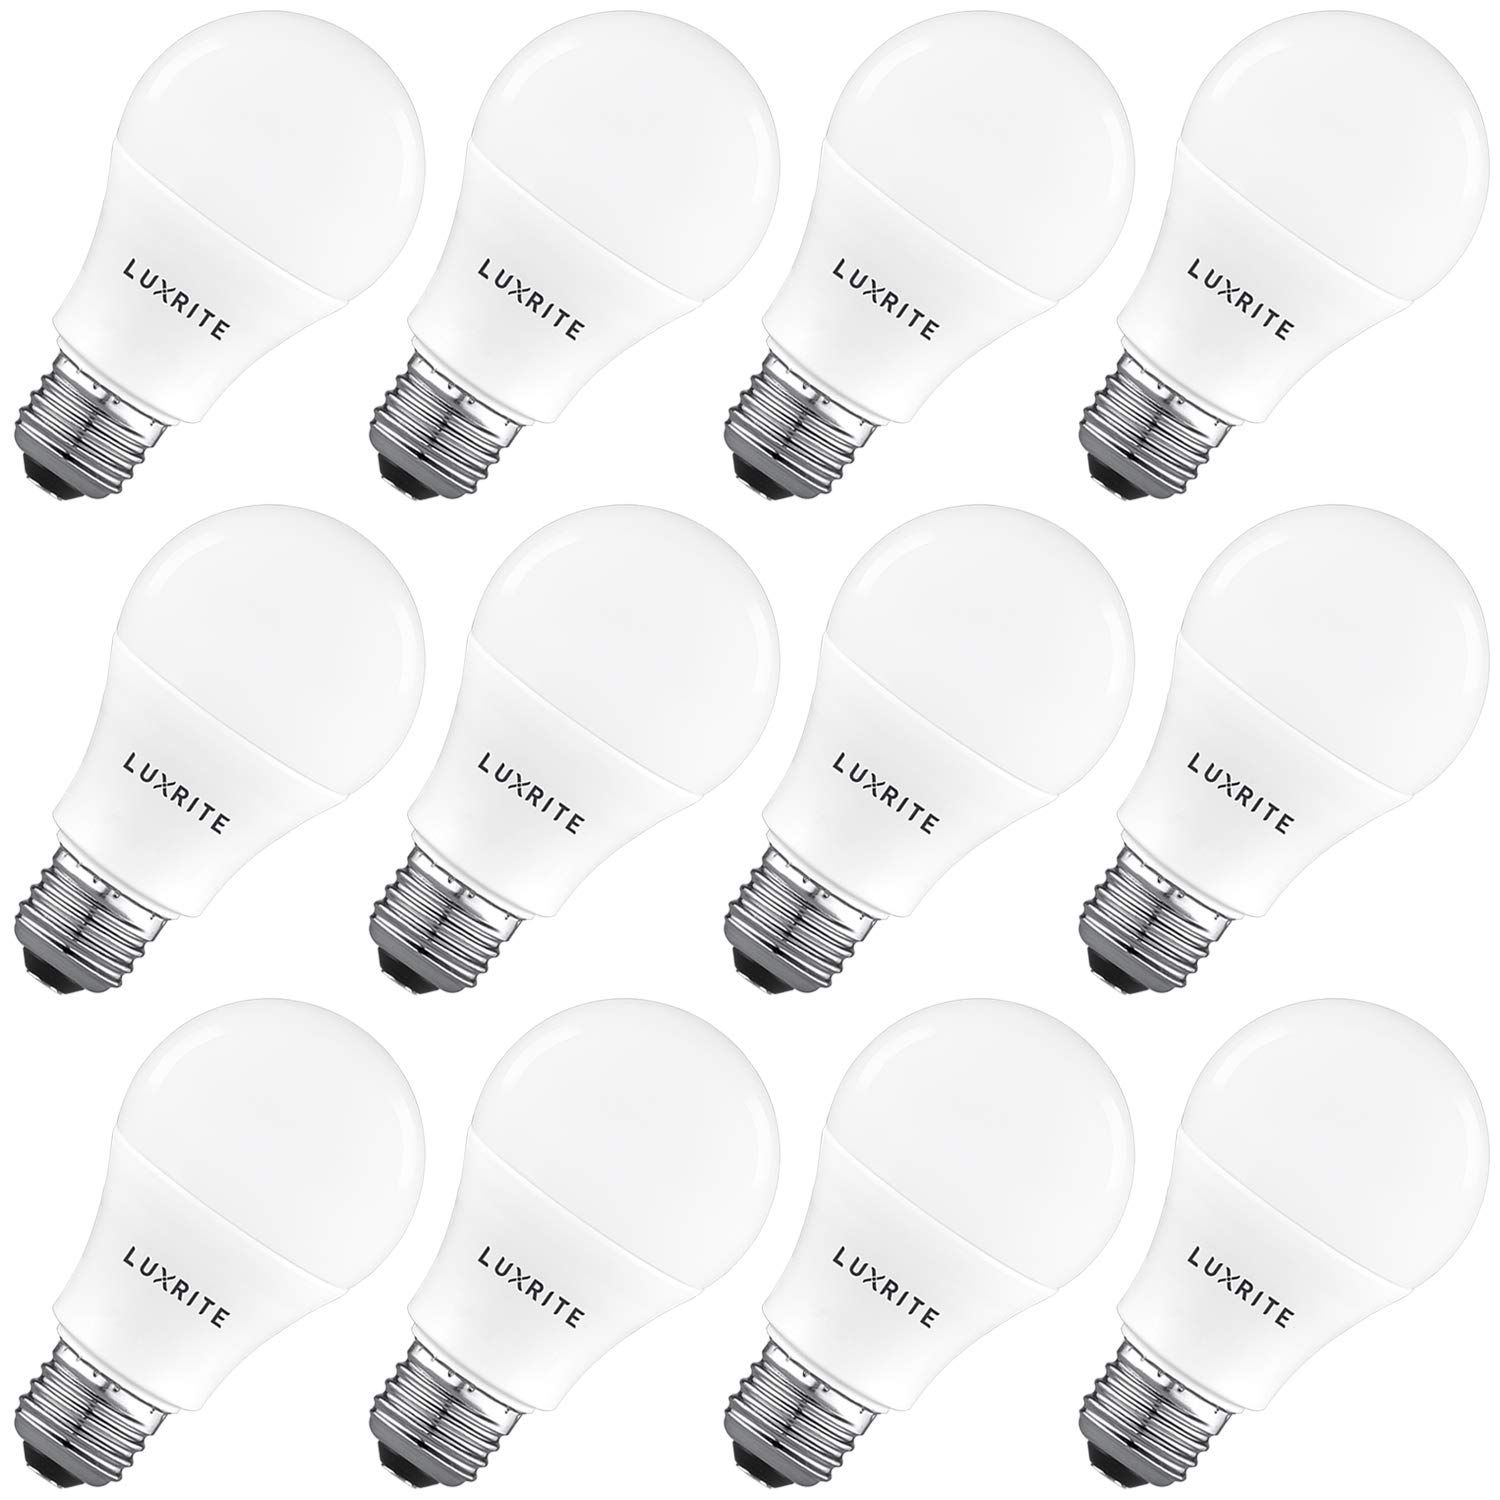 Luxrite A19 Led Light Bulb 100w Equivalent 5000k Bright White Non Dimmable 1600 Lumens Standard Led Bulb 15w E26 Medium Base Led Light Bulb Led Bulb Bulb